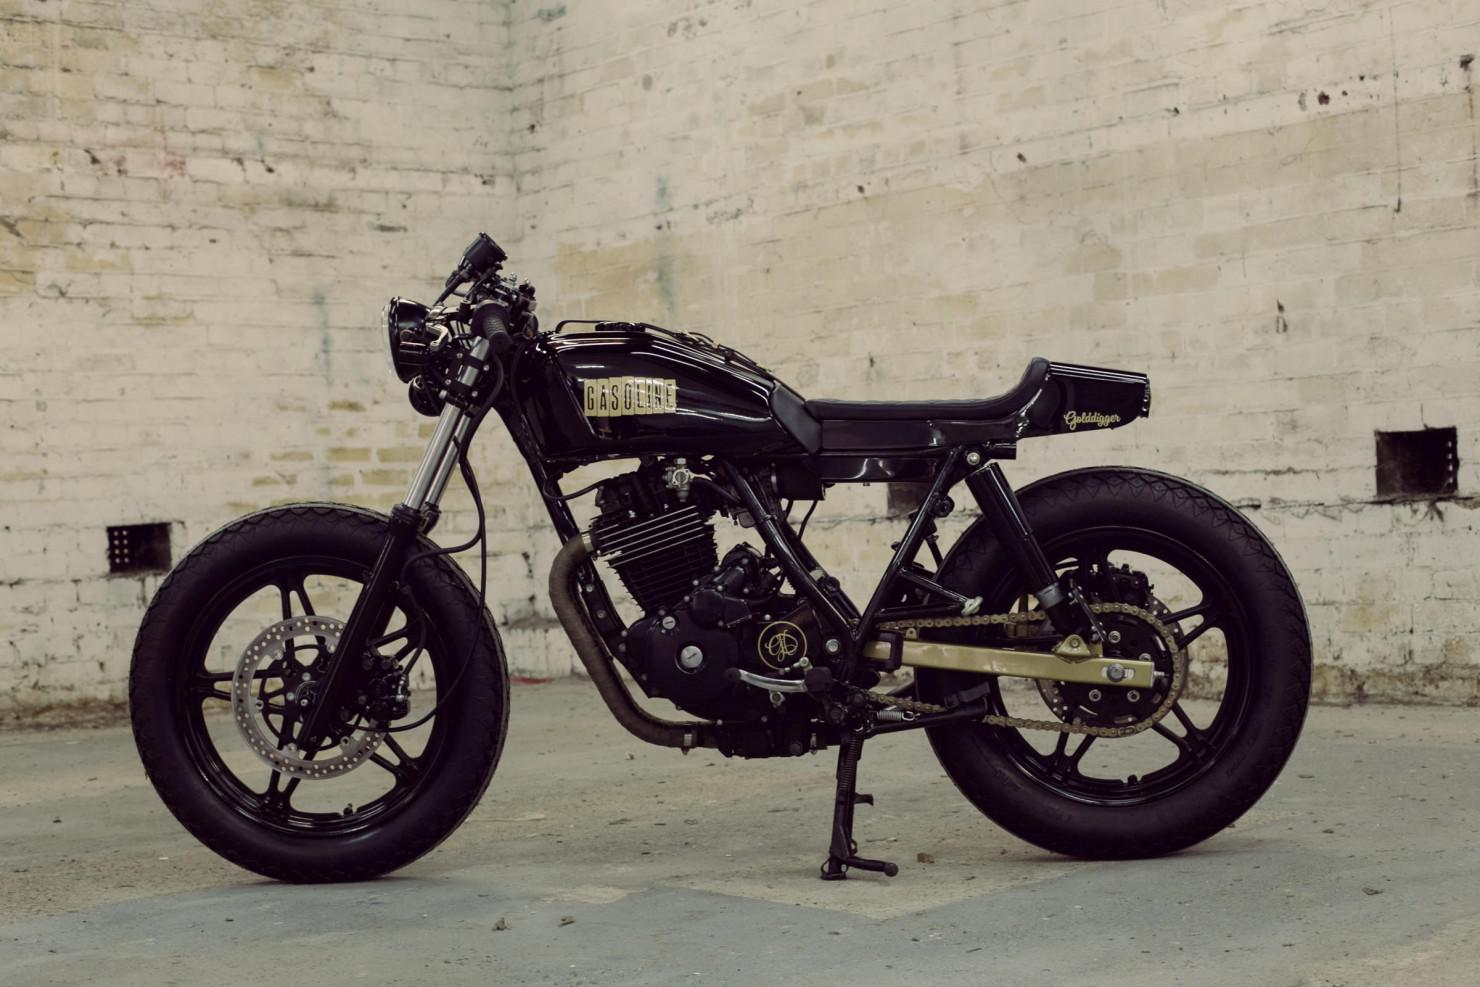 Permalink to Cafe Racer 2017